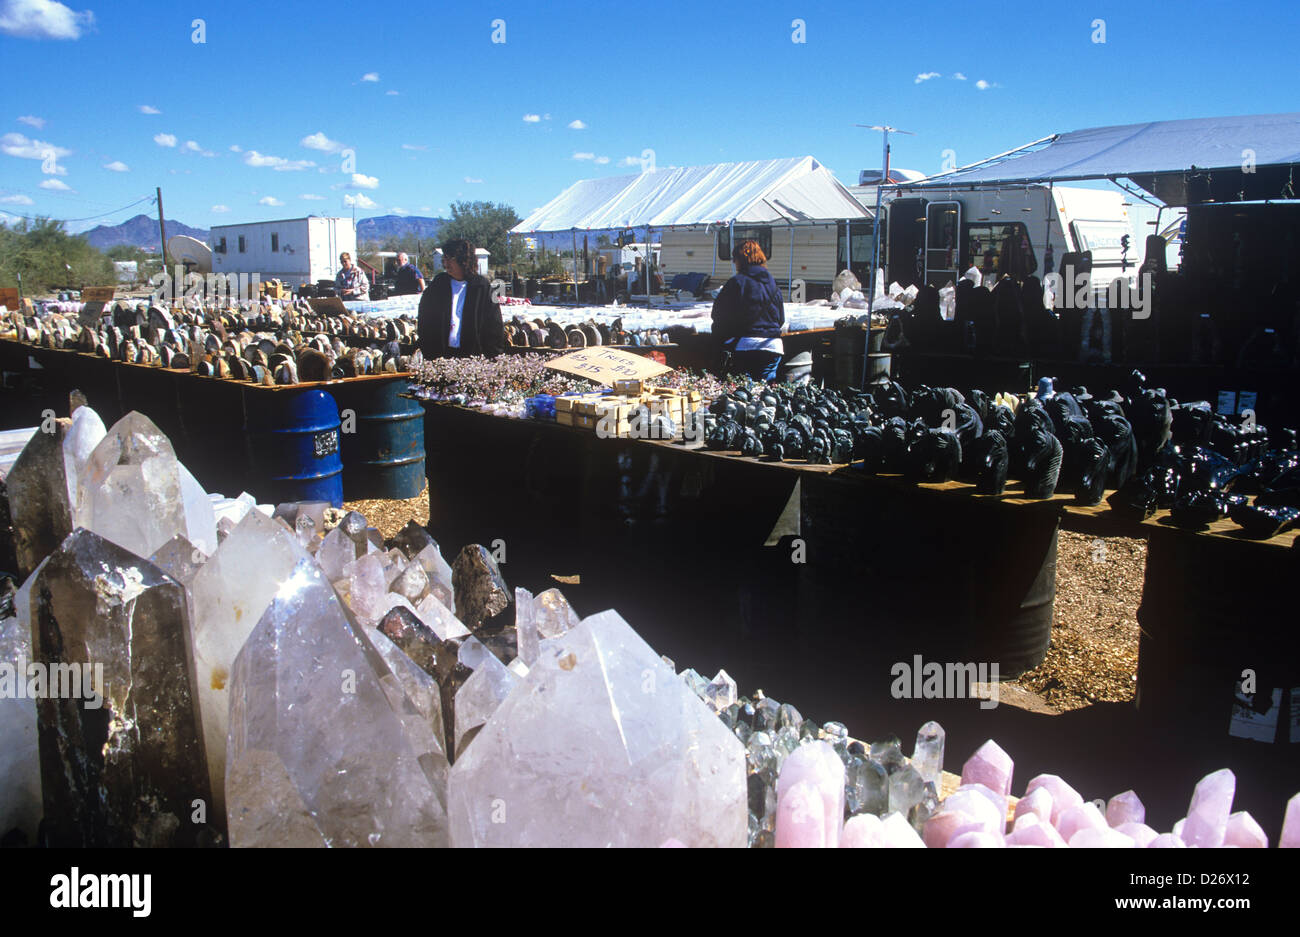 Massive quantities of gems and minerals are sold or traded at shows and swap meets each winter in Quartzsite, Arizona, - Stock Image